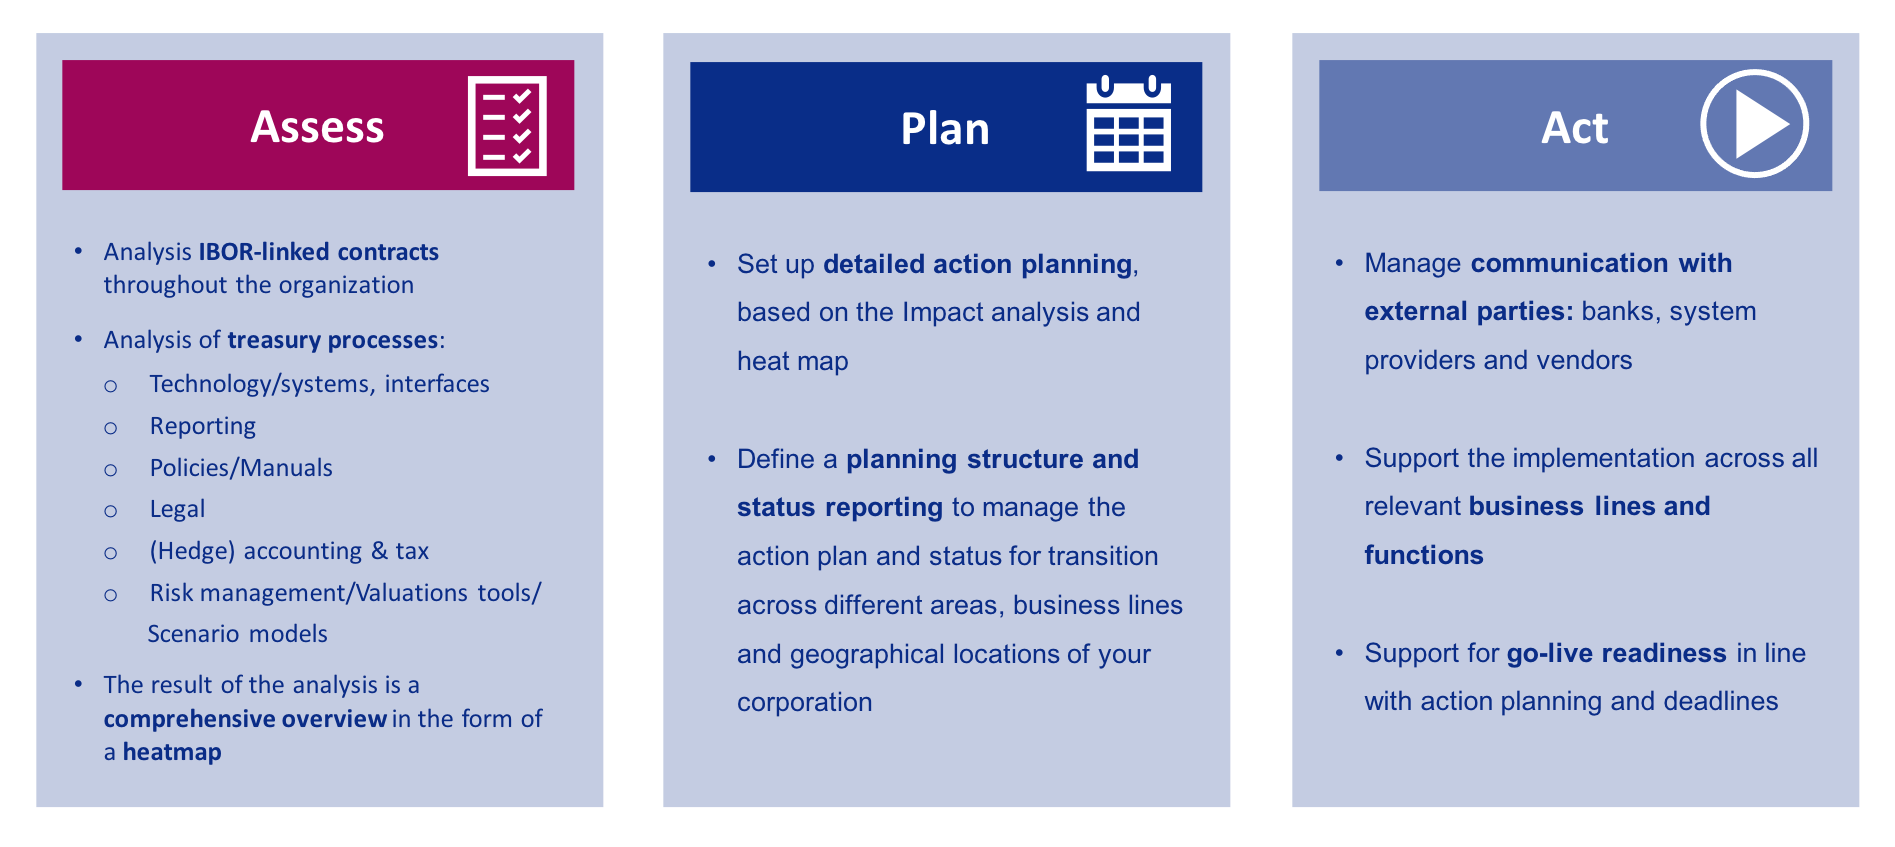 Assess Plan Act for IBOR transition